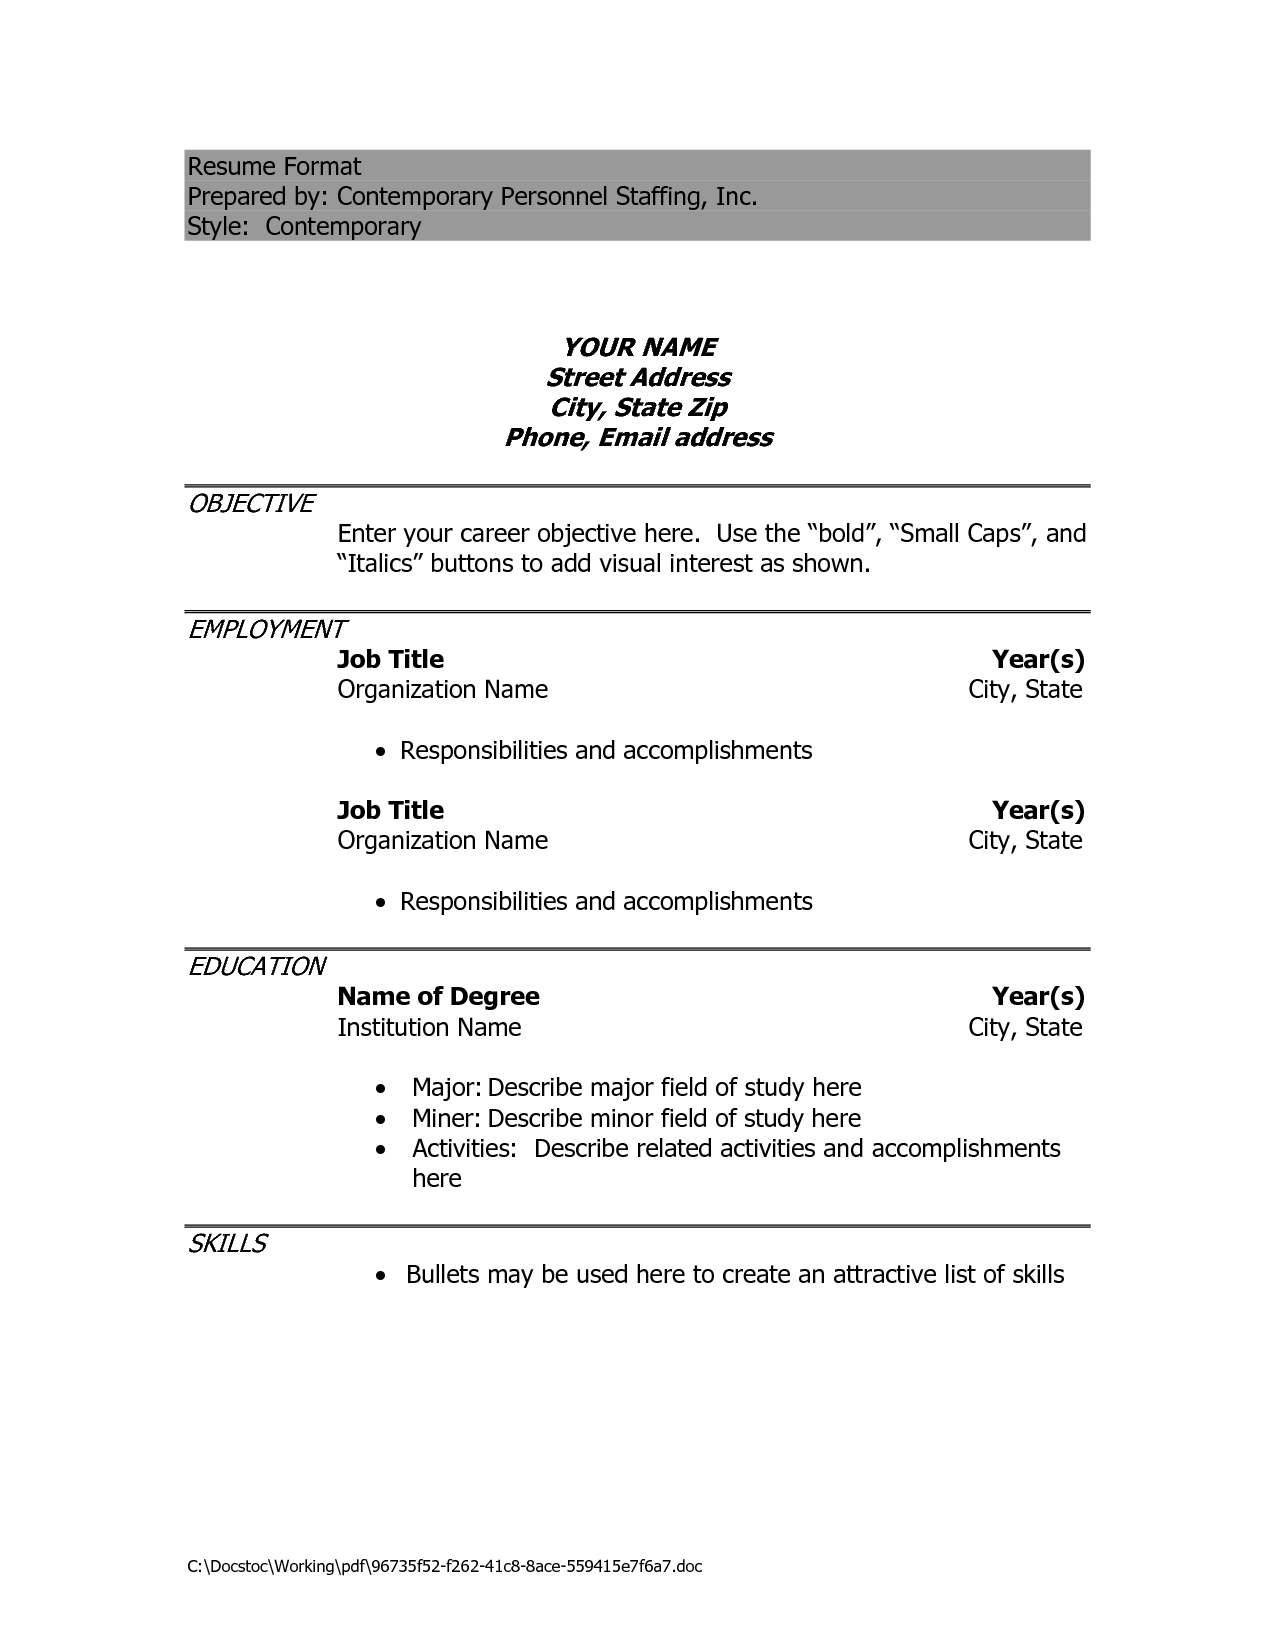 Resume Templates Doc Resume Format For Teachers Doc File Resume Format For Teachers Doc